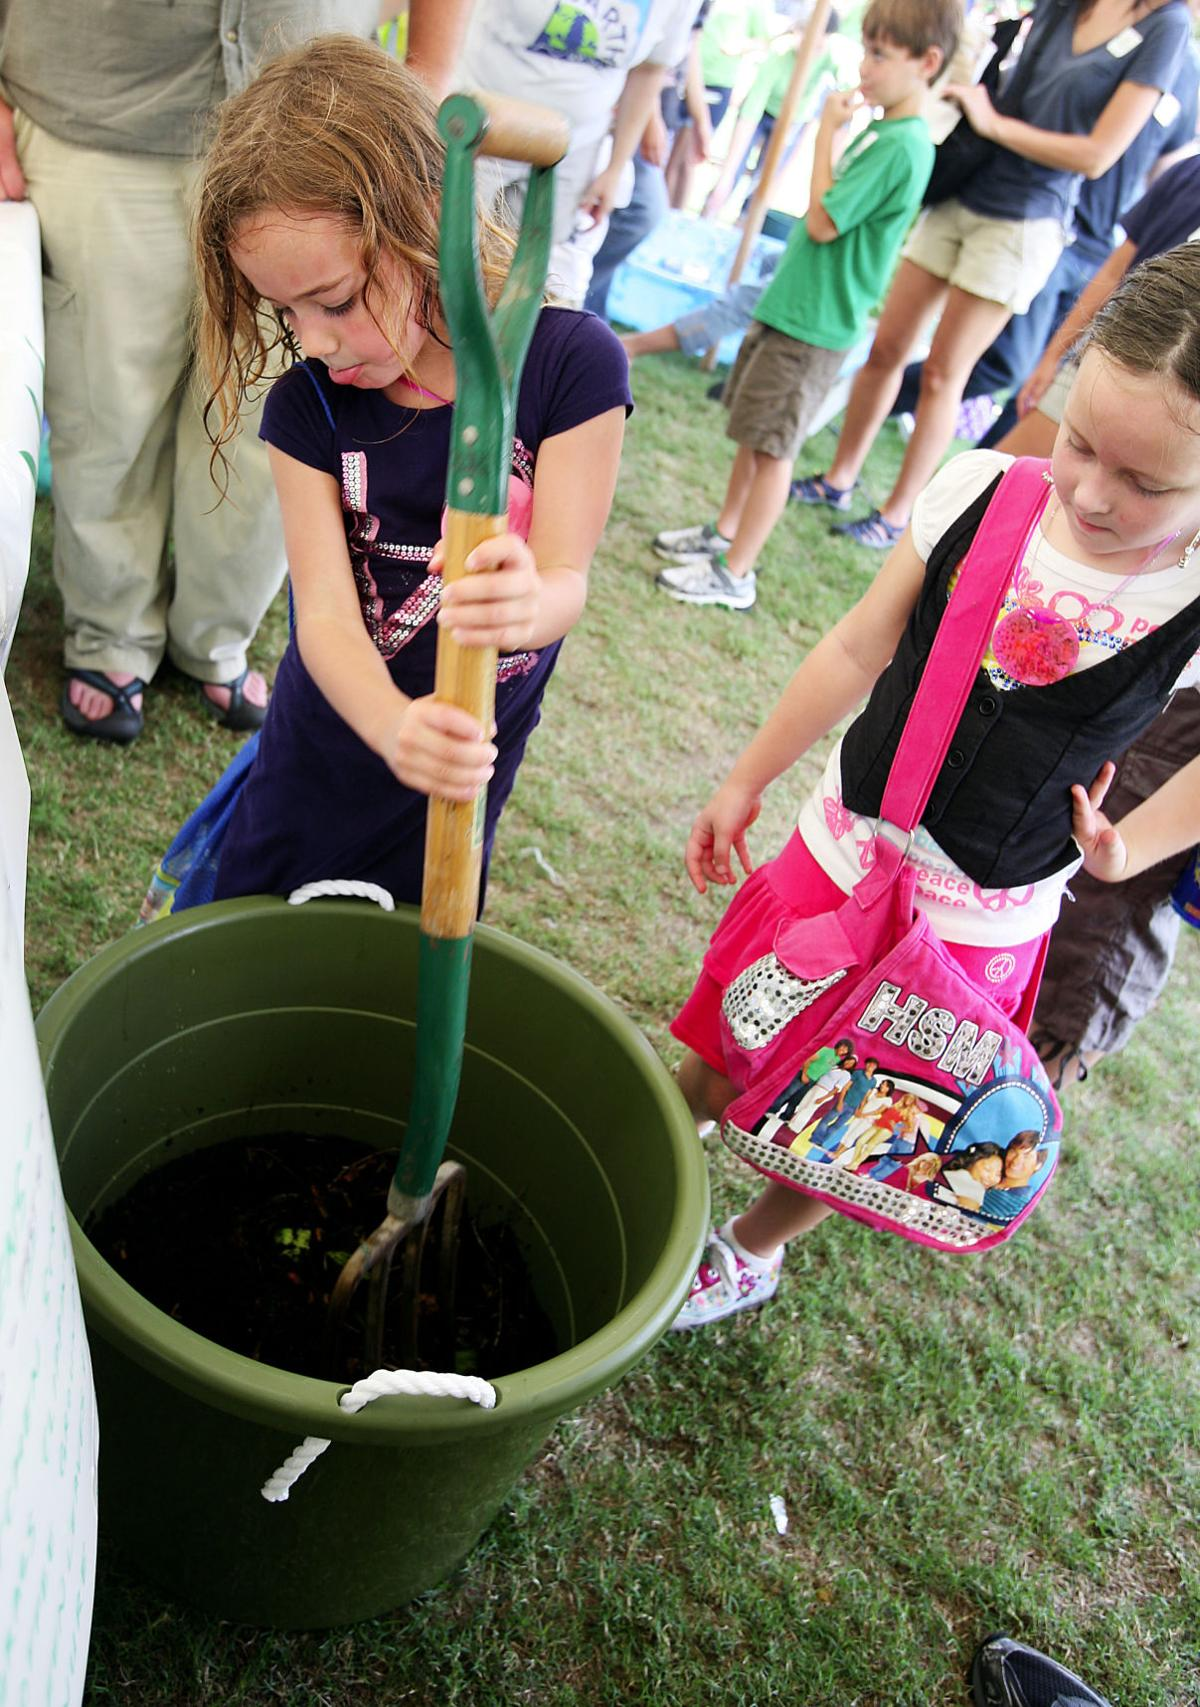 Carolina Green Fair to promote eco-friendly values with family-friendly activities